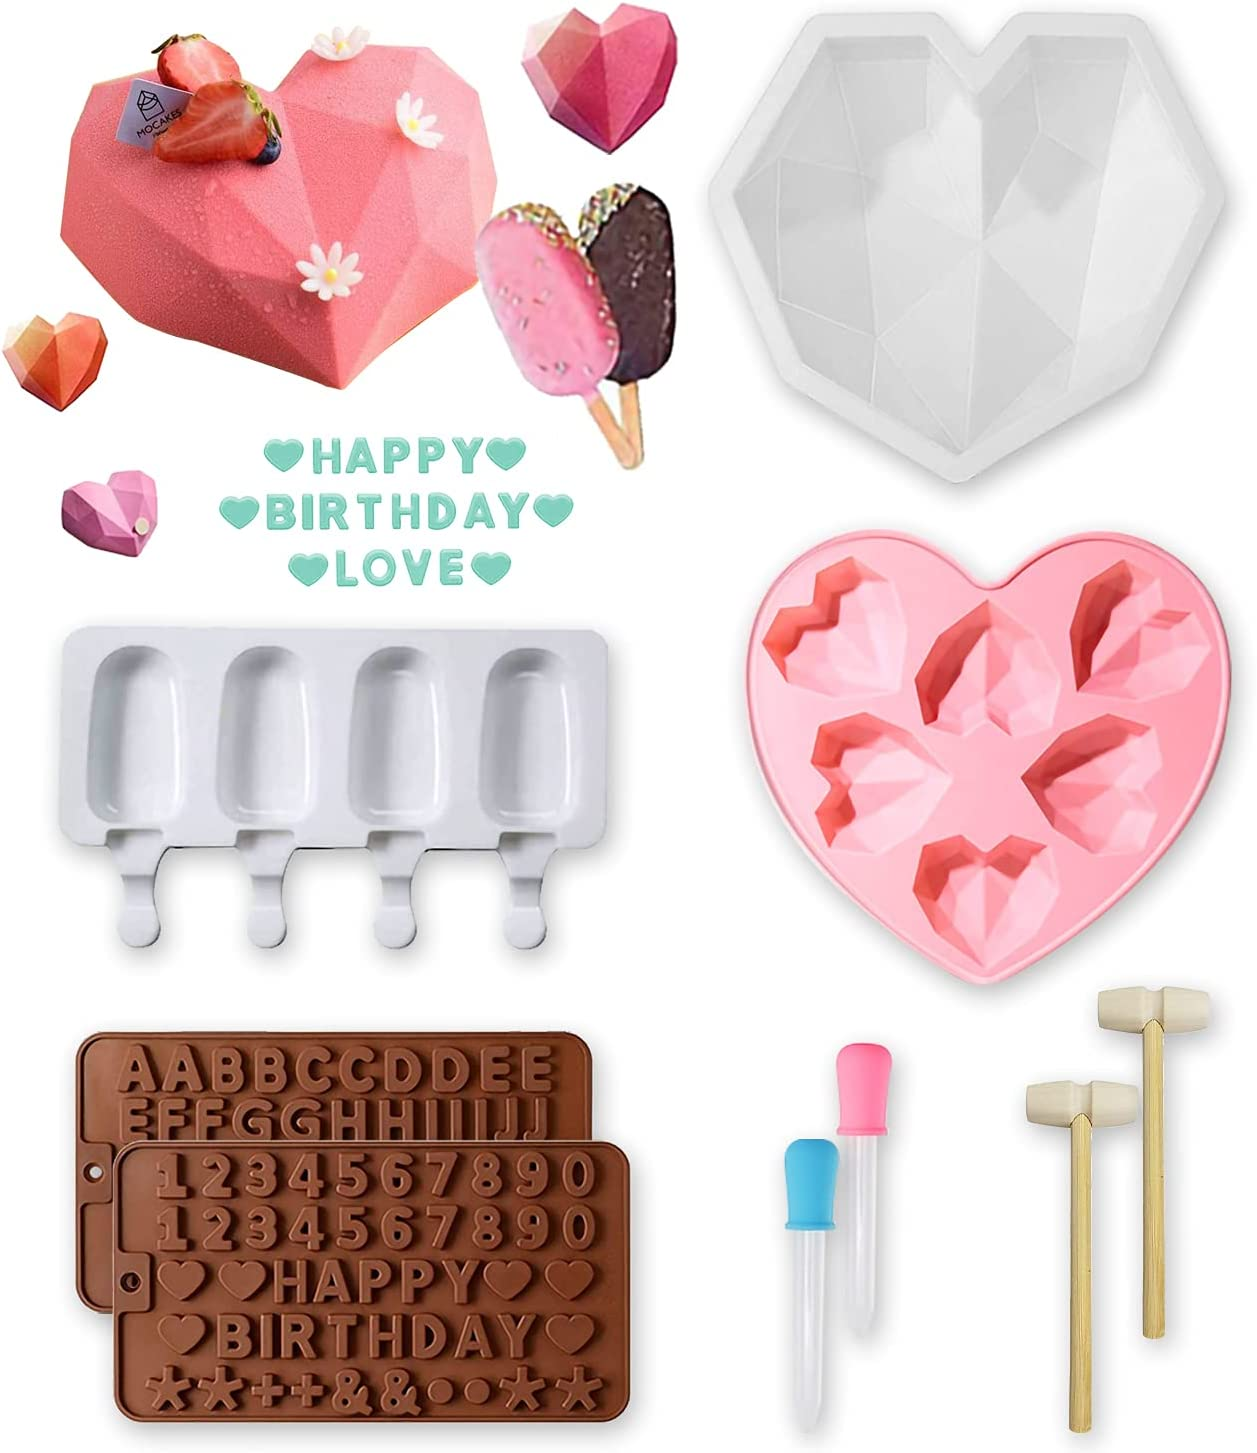 Silicone Heart Molds for Cake Breakable Chocolate Molds Candy Ice Molds for Baking and Frozen 10 Pack Silicone Gummy Mold Tool with 1 Diamond &6 heart,4 in 1 Ice Cube Tray for Dessert Making DIY Cream